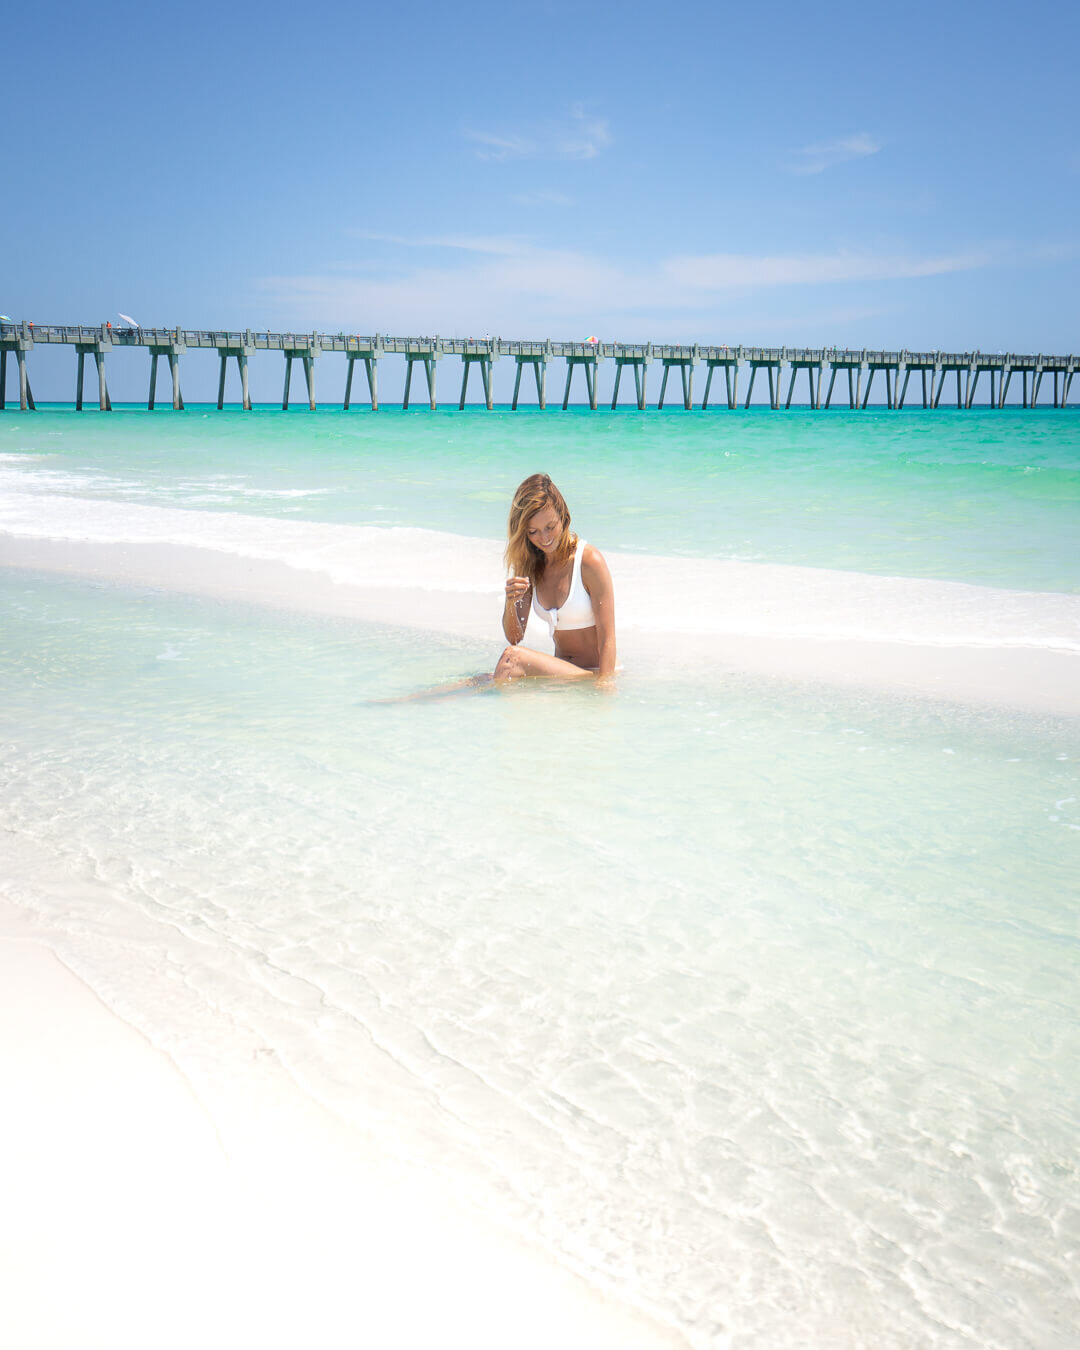 Hanging out in the sun at Pensacola Beach, Florida.